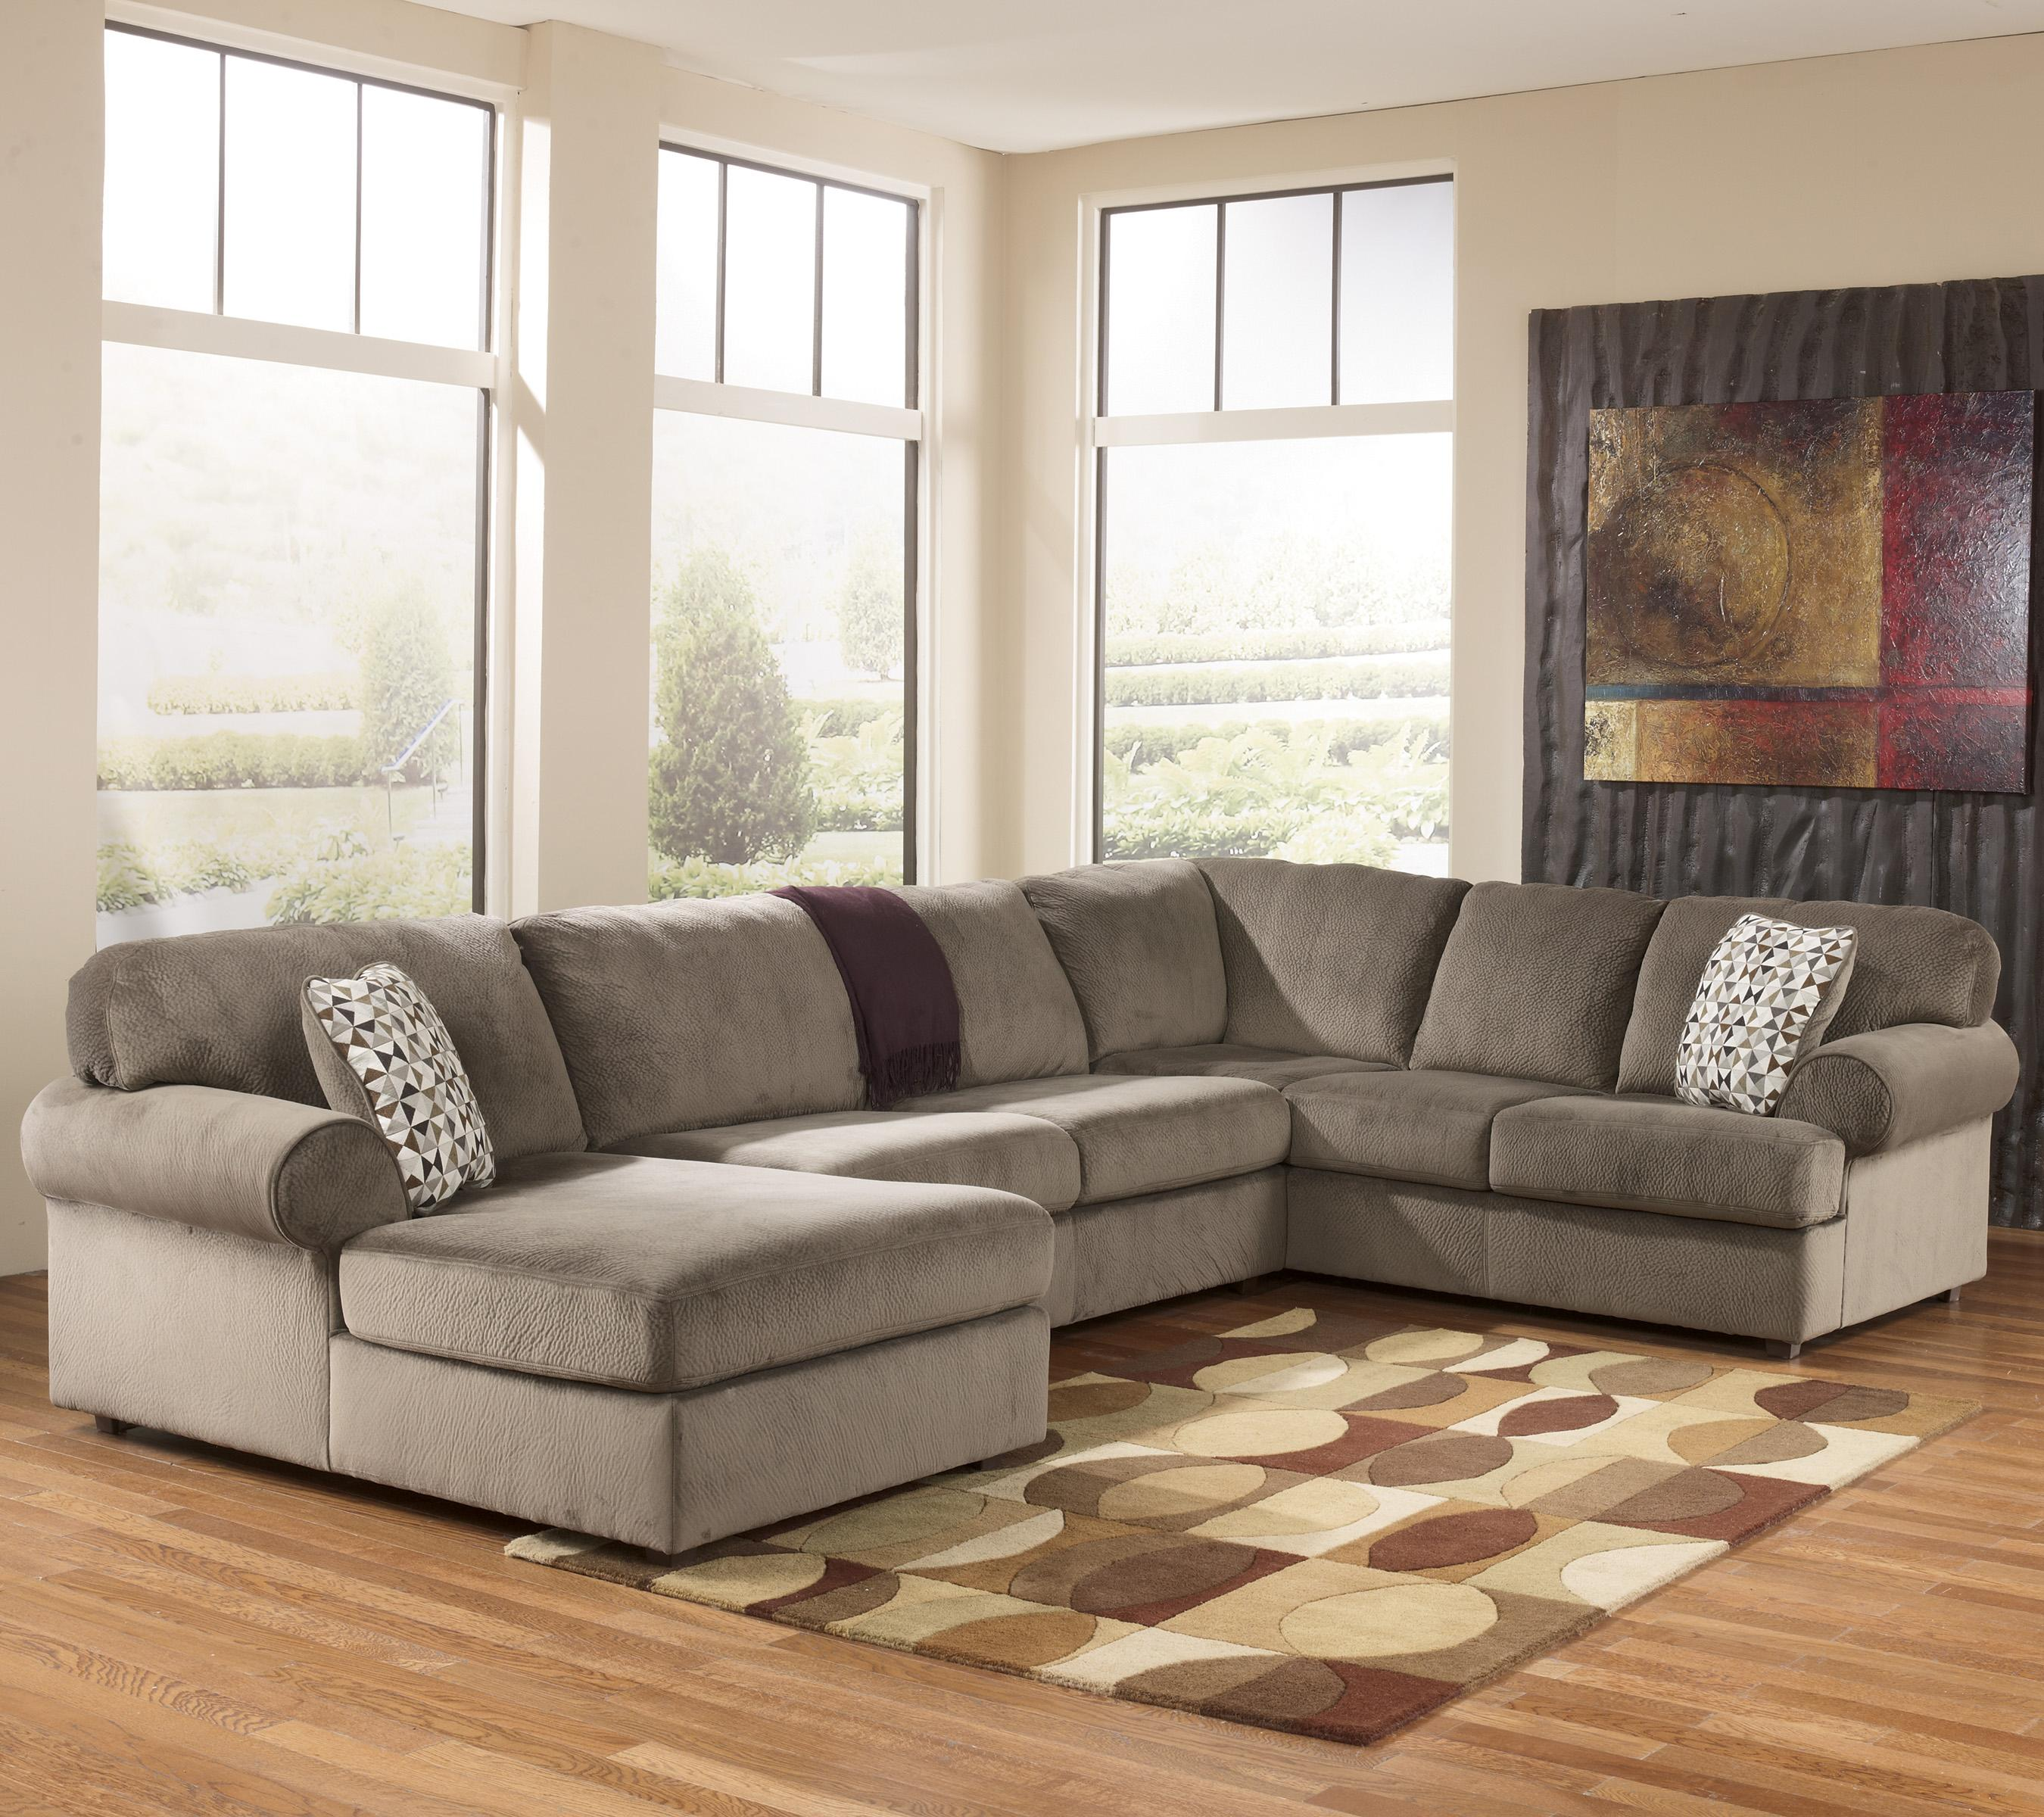 Signature Design By Ashley Jessa Place Dune Casual Sectional